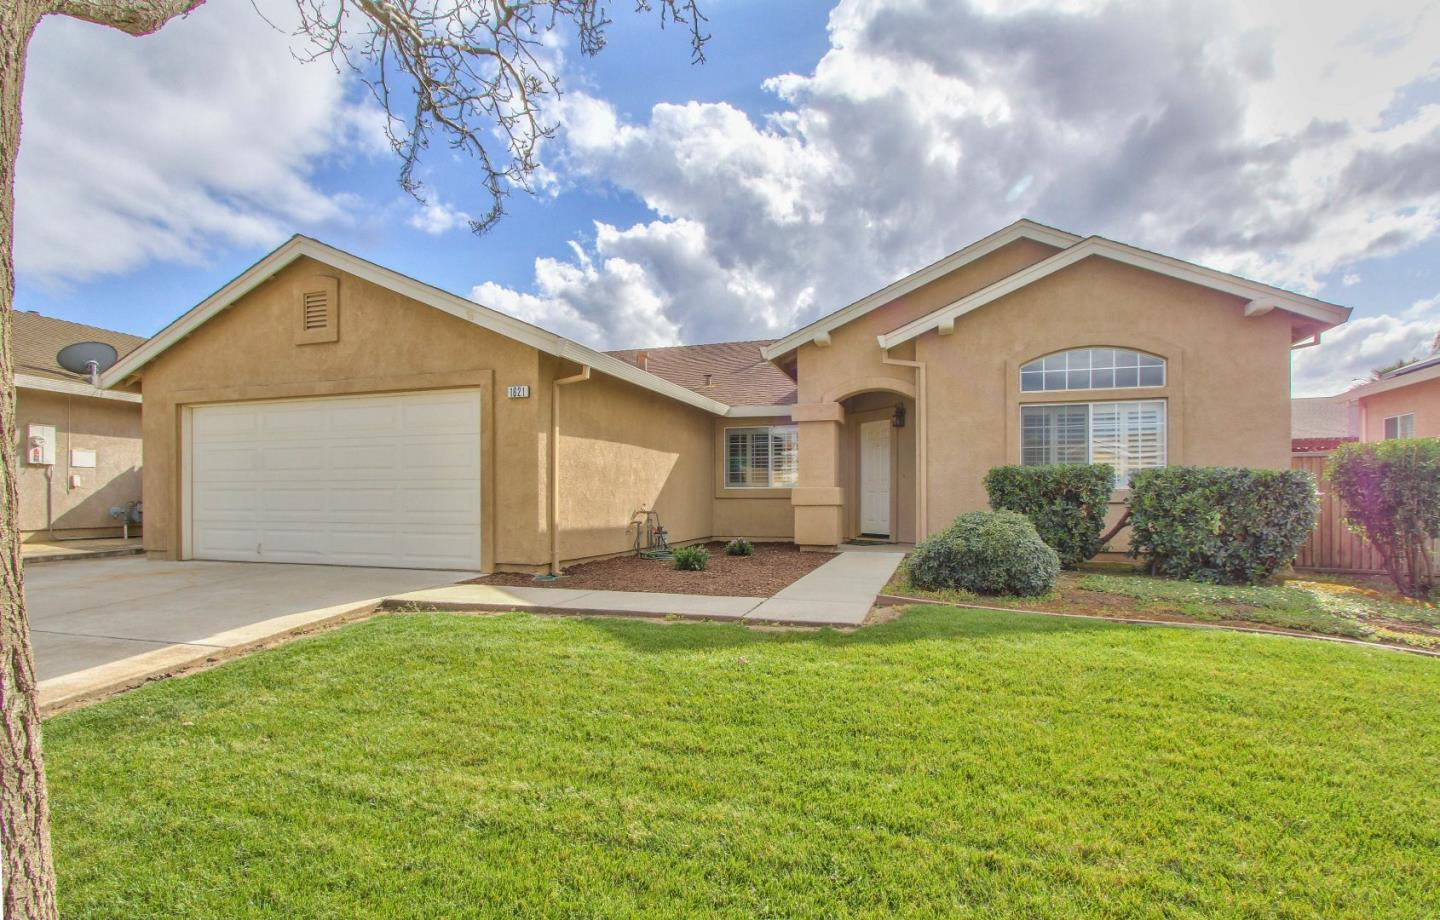 Detail Gallery Image 1 of 1 For 1621 Spumante Way, Gonzales,  CA 93926 - 4 Beds   2 Baths